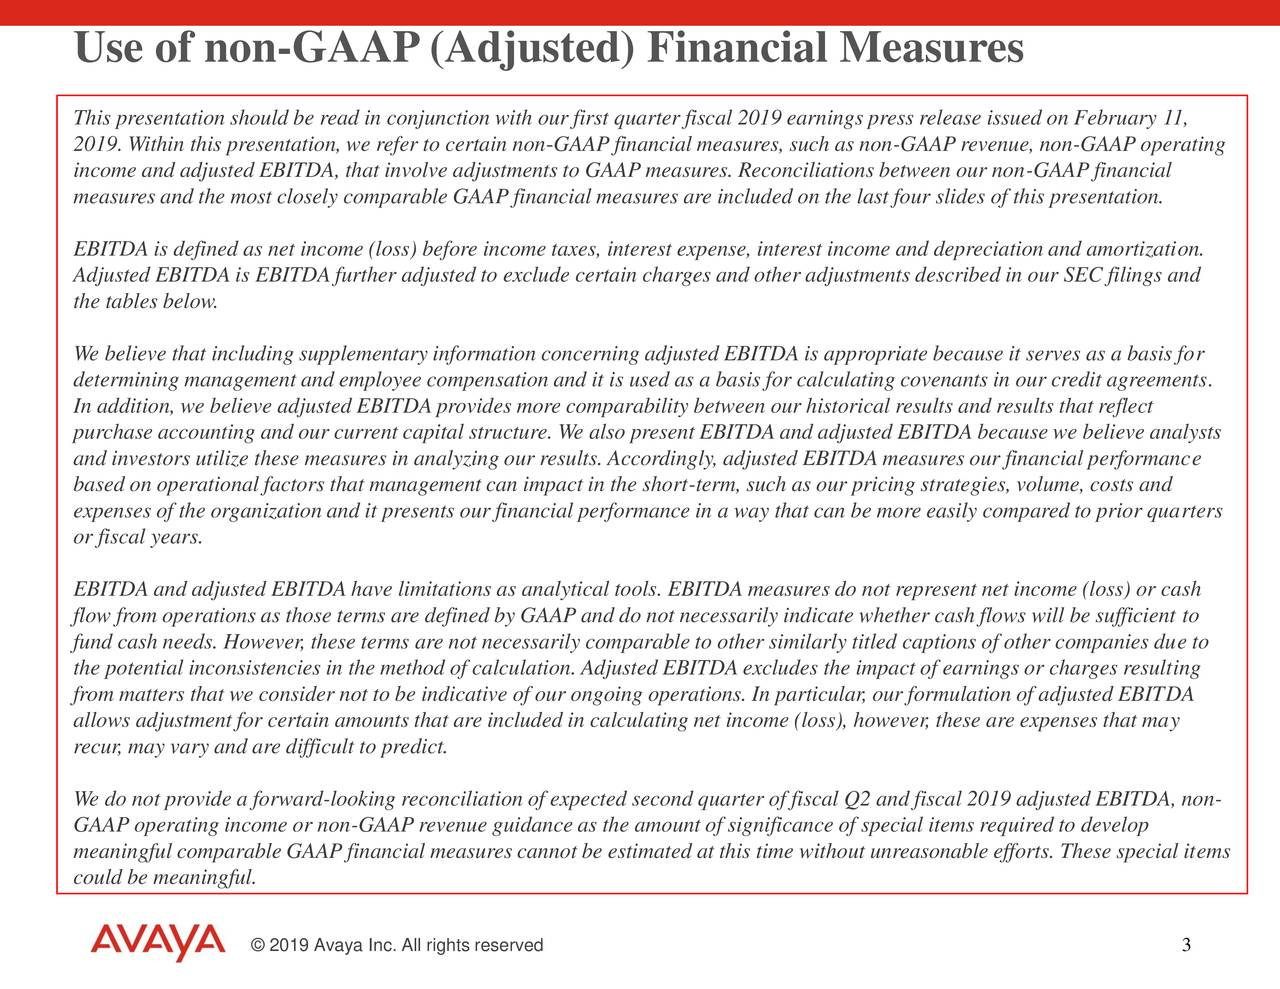 This presentation should be read in conjunction with our first quarter fiscal 2019 earnings press release issued on February 11, 2019. Within this presentation, we refer to certain non-GAAP financial measures, such as non-GAAP revenue, non-GAAP operating income and adjusted EBITDA, that involve adjustments to GAAP measures. Reconciliations between our non-GAAP financial measures and the most closely comparable GAAP financial measures are included on the last four slides of this presentation. EBITDA is defined as net income (loss) before income taxes, interest expense, interest income and depreciation and amortization. Adjusted EBITDA is EBITDA further adjusted to exclude certain charges and other adjustments described in our SEC filings and the tables below. We believe that including supplementary information concerning adjusted EBITDA is appropriate because it serves as a basis for determining management and employee compensation and it is used as a basis for calculating covenants in our credit agreements. In addition, we believe adjusted EBITDA provides more comparability between our historical results and results that reflect purchase accounting and our current capital structure. We also present EBITDA and adjusted EBITDA because we believe analysts and investors utilize these measures in analyzing our results. Accordingly, adjusted EBITDA measures our financial performance based on operational factors that management can impact in the short-term, such as our pricing strategies, volume, costs and expenses of the organization and it presents our financial performance in a way that can be more easily compared to prior quarters or fiscal years. EBITDA and adjusted EBITDA have limitations as analytical tools. EBITDA measures do not represent net income (loss) or cash flow from operations as those terms are defined by GAAP and do not necessarily indicate whether cash flows will be sufficient to fund cash needs. However, these terms are not necessarily comparable to other similarly titled captions of other companies due to the potential inconsistencies in the method of calculation. Adjusted EBITDA excludes the impact of earnings or charges resulting from matters that we consider not to be indicative of our ongoing operations. In particular, our formulation of adjusted EBITDA allows adjustment for certain amounts that are included in calculating net income (loss), however, these are expenses that may recur, may vary and are difficult to predict. We do not provide a forward-looking reconciliation of expected second quarter of fiscal Q2 and fiscal 2019 adjusted EBITDA, non- GAAP operating income or non-GAAP revenue guidance as the amount of significance of special items required to develop meaningful comparable GAAP financial measures cannot be estimated at this time without unreasonable efforts. These special items could be meaningful. © 2019 Avaya Inc. All rights reserved 3